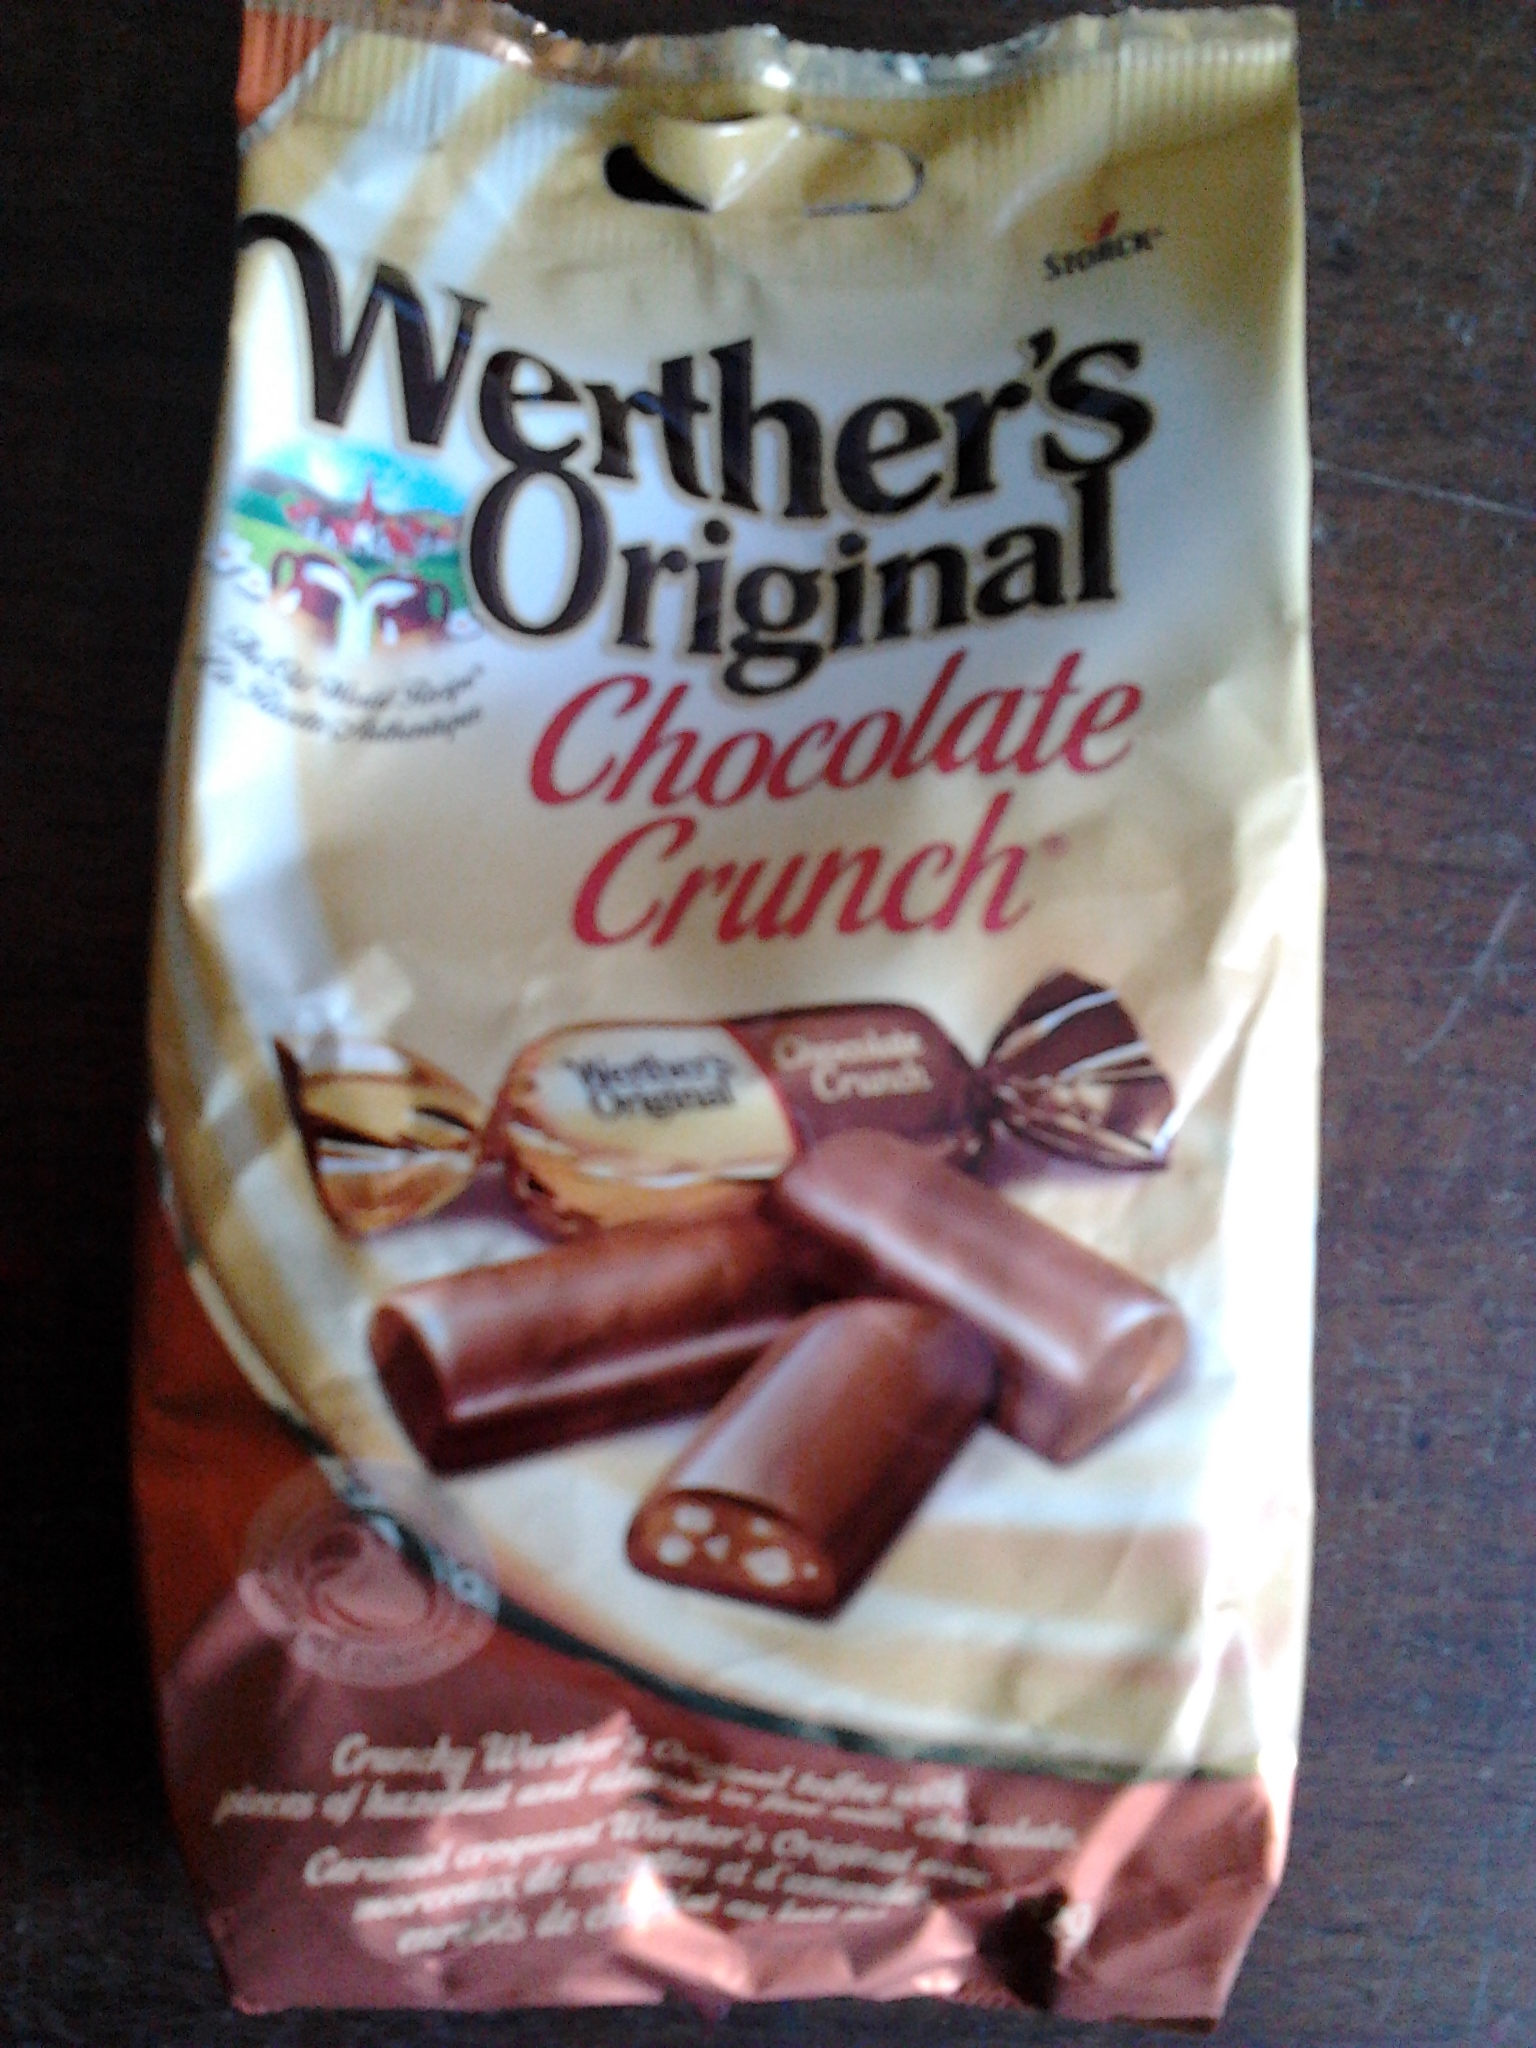 Werther's Original Chocolate Crunch reviews in Chocolate